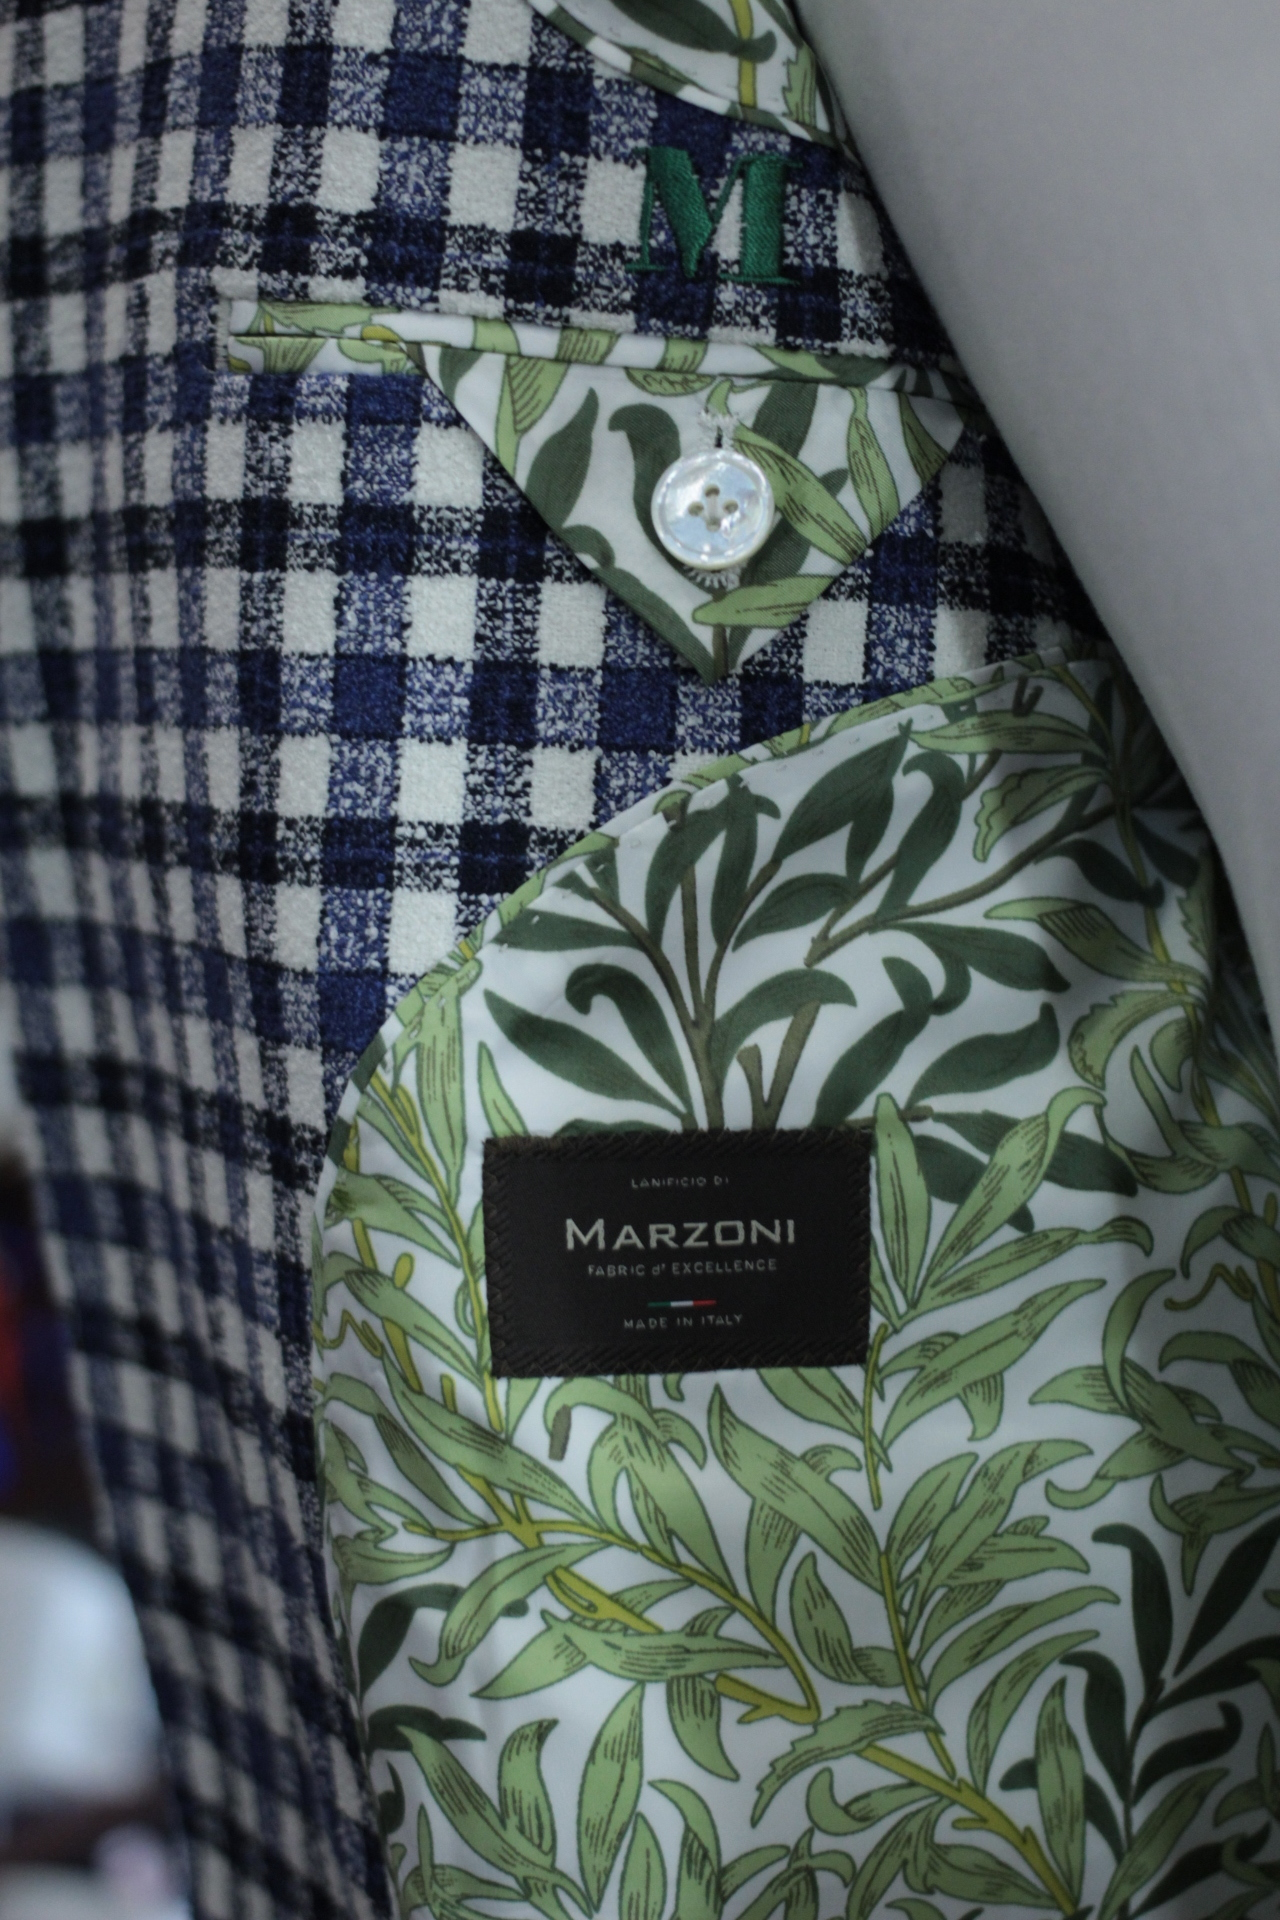 Plant Lining with Marzoni Label